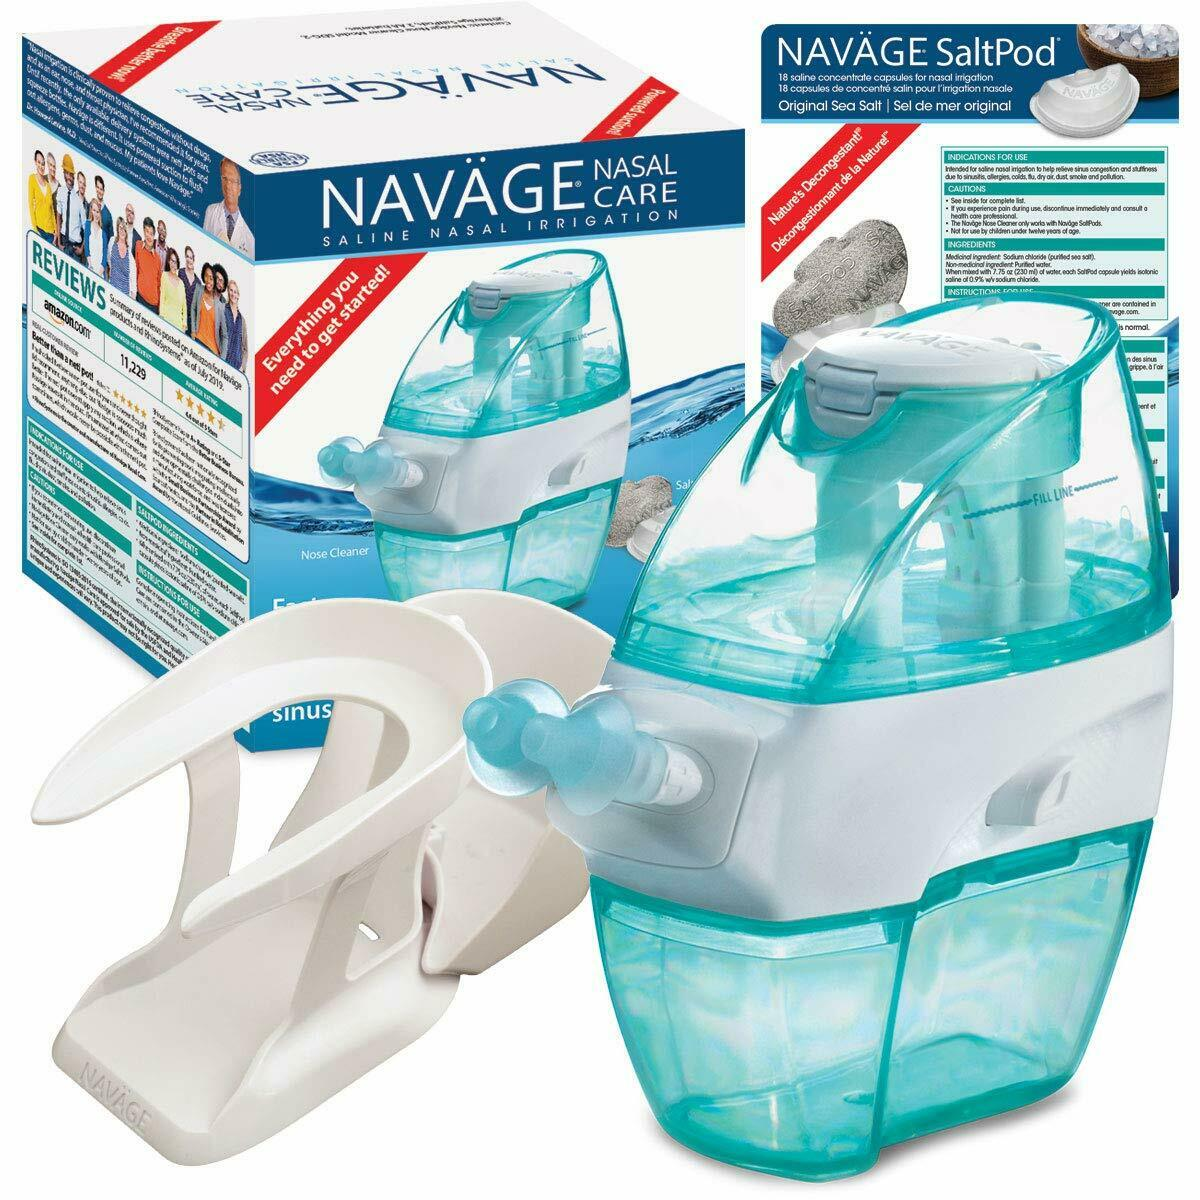 NAVAGE SOFT-CLICK BUNDLE: Nose Cleaner & 18 SaltPods ($89.95 if perfect) Neti